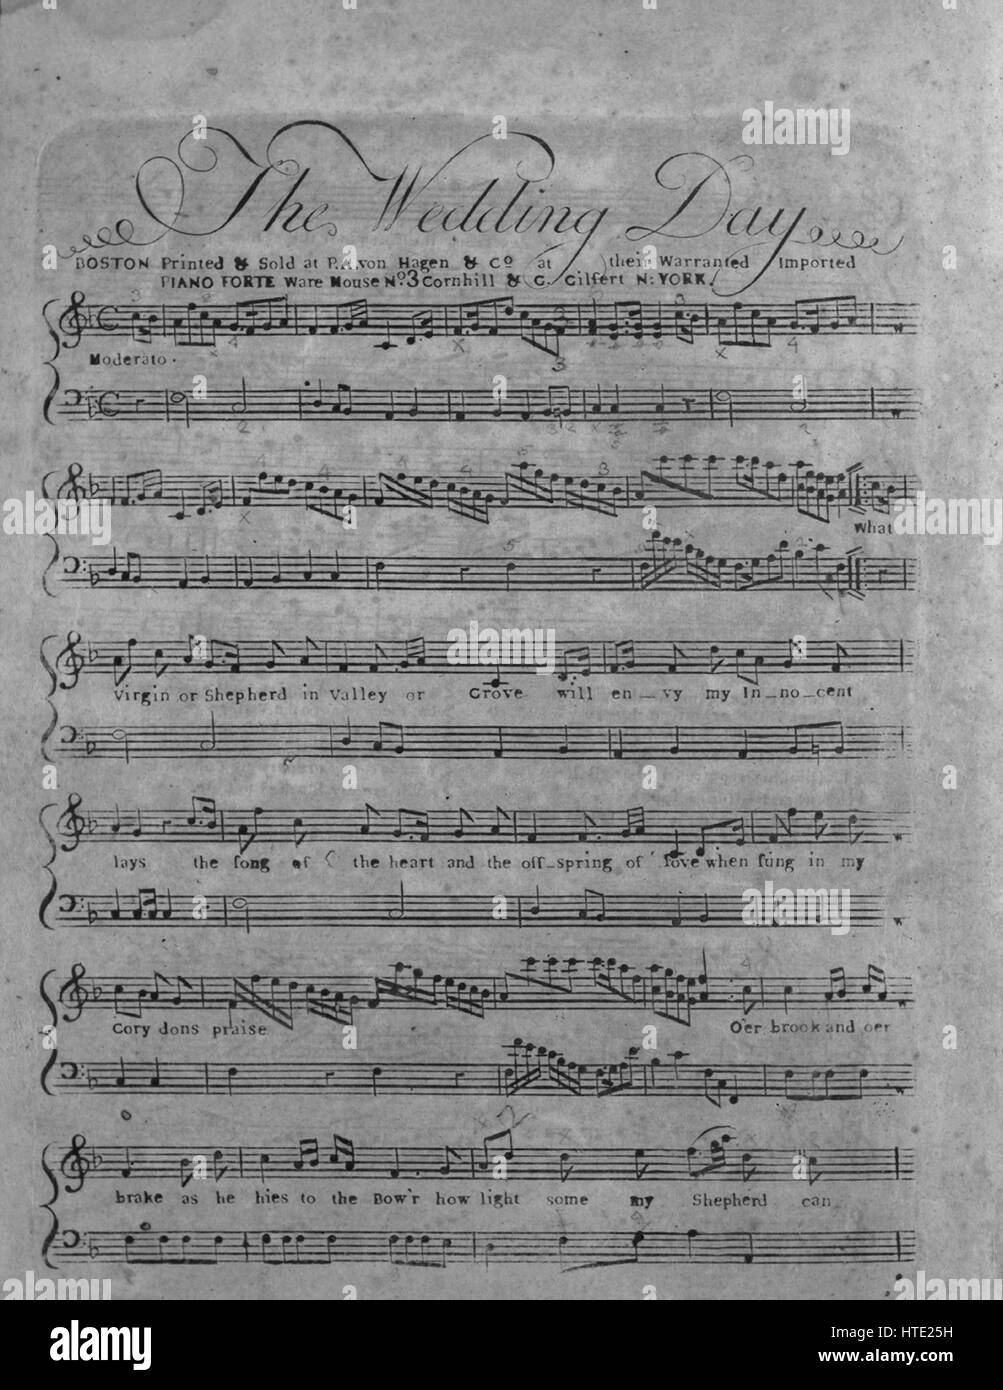 sheet music cover image of the song the wedding day with original